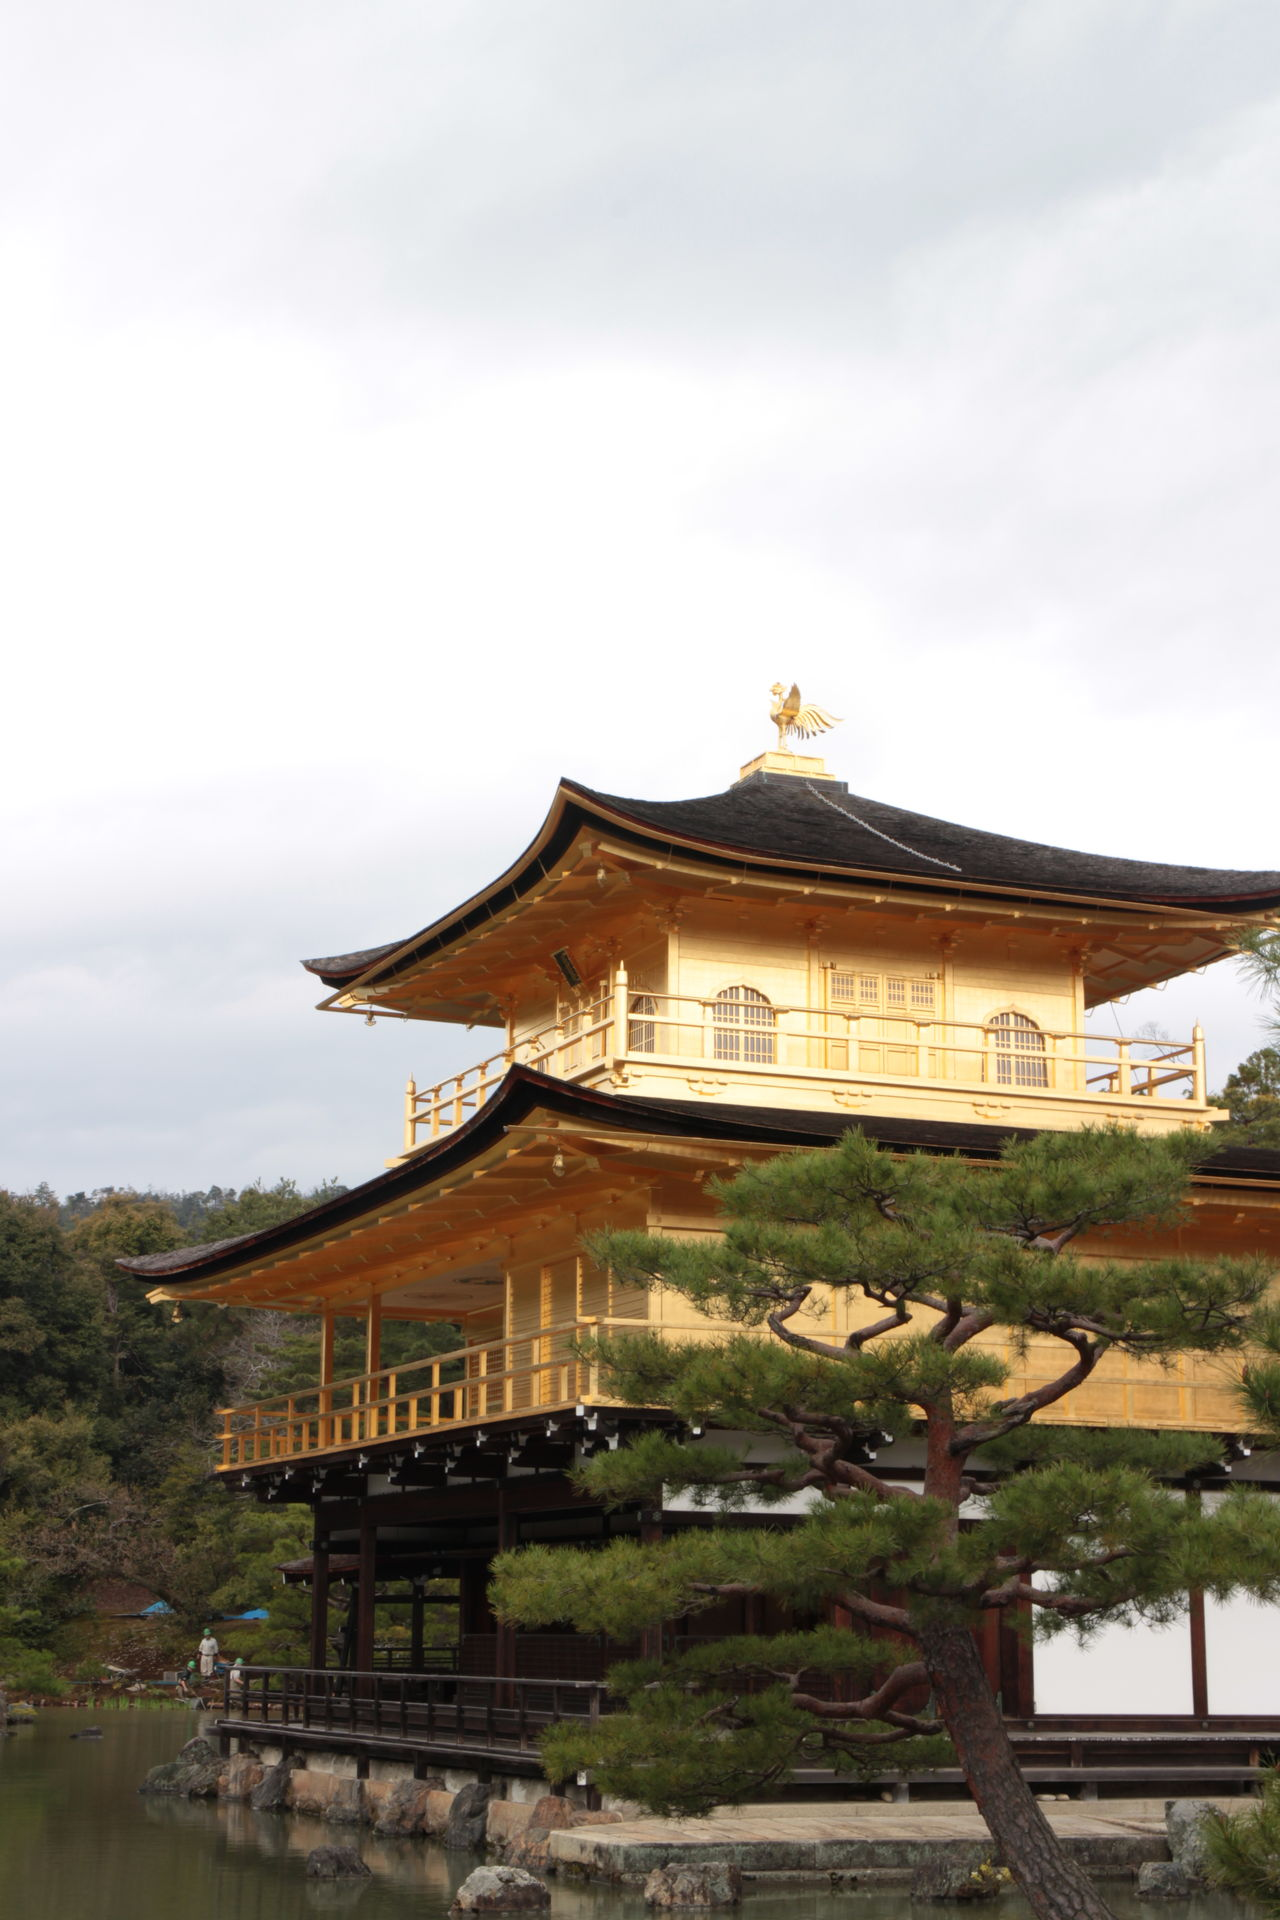 Architecture Building Exterior Built Structure Cloud - Sky Day Golden Temple Japan Japan Photography Kinkakuji Temple Kyoto No People Outdoors Place Of Worship Religion Roof Sky Travel Destinations Tree